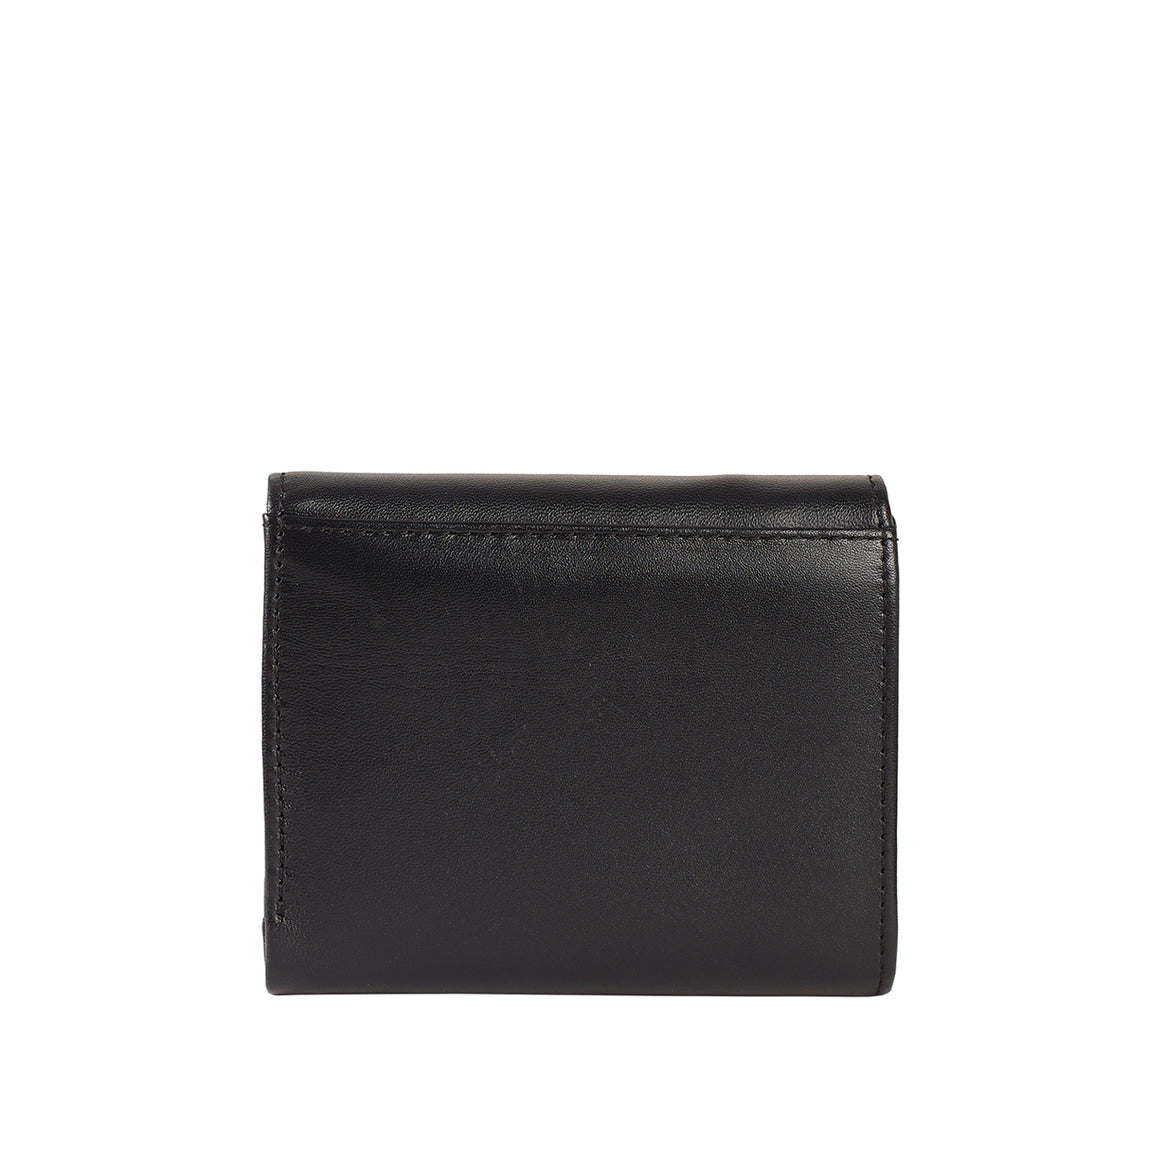 WT 0009 - TOHL STEVIE WOMEN'S COMPACT WALLET - CHARCOAL BLACK